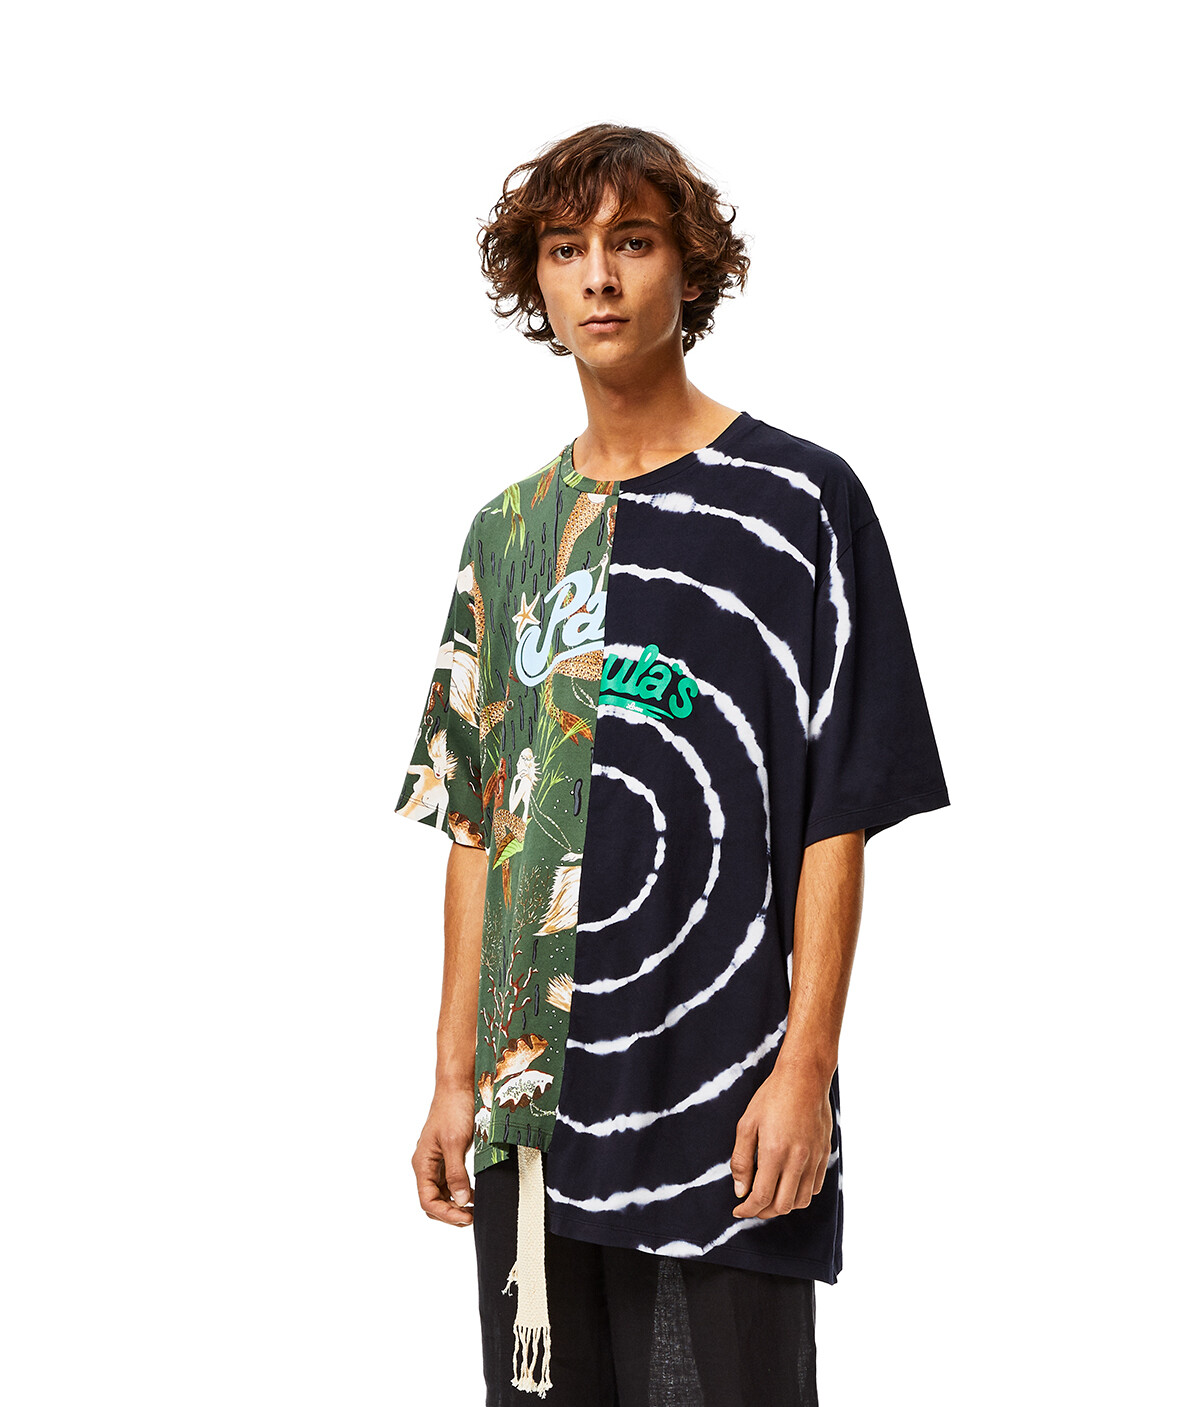 LOEWE Asymmetric Oversize T-Shirt In Cotton Multicolor/Navy front